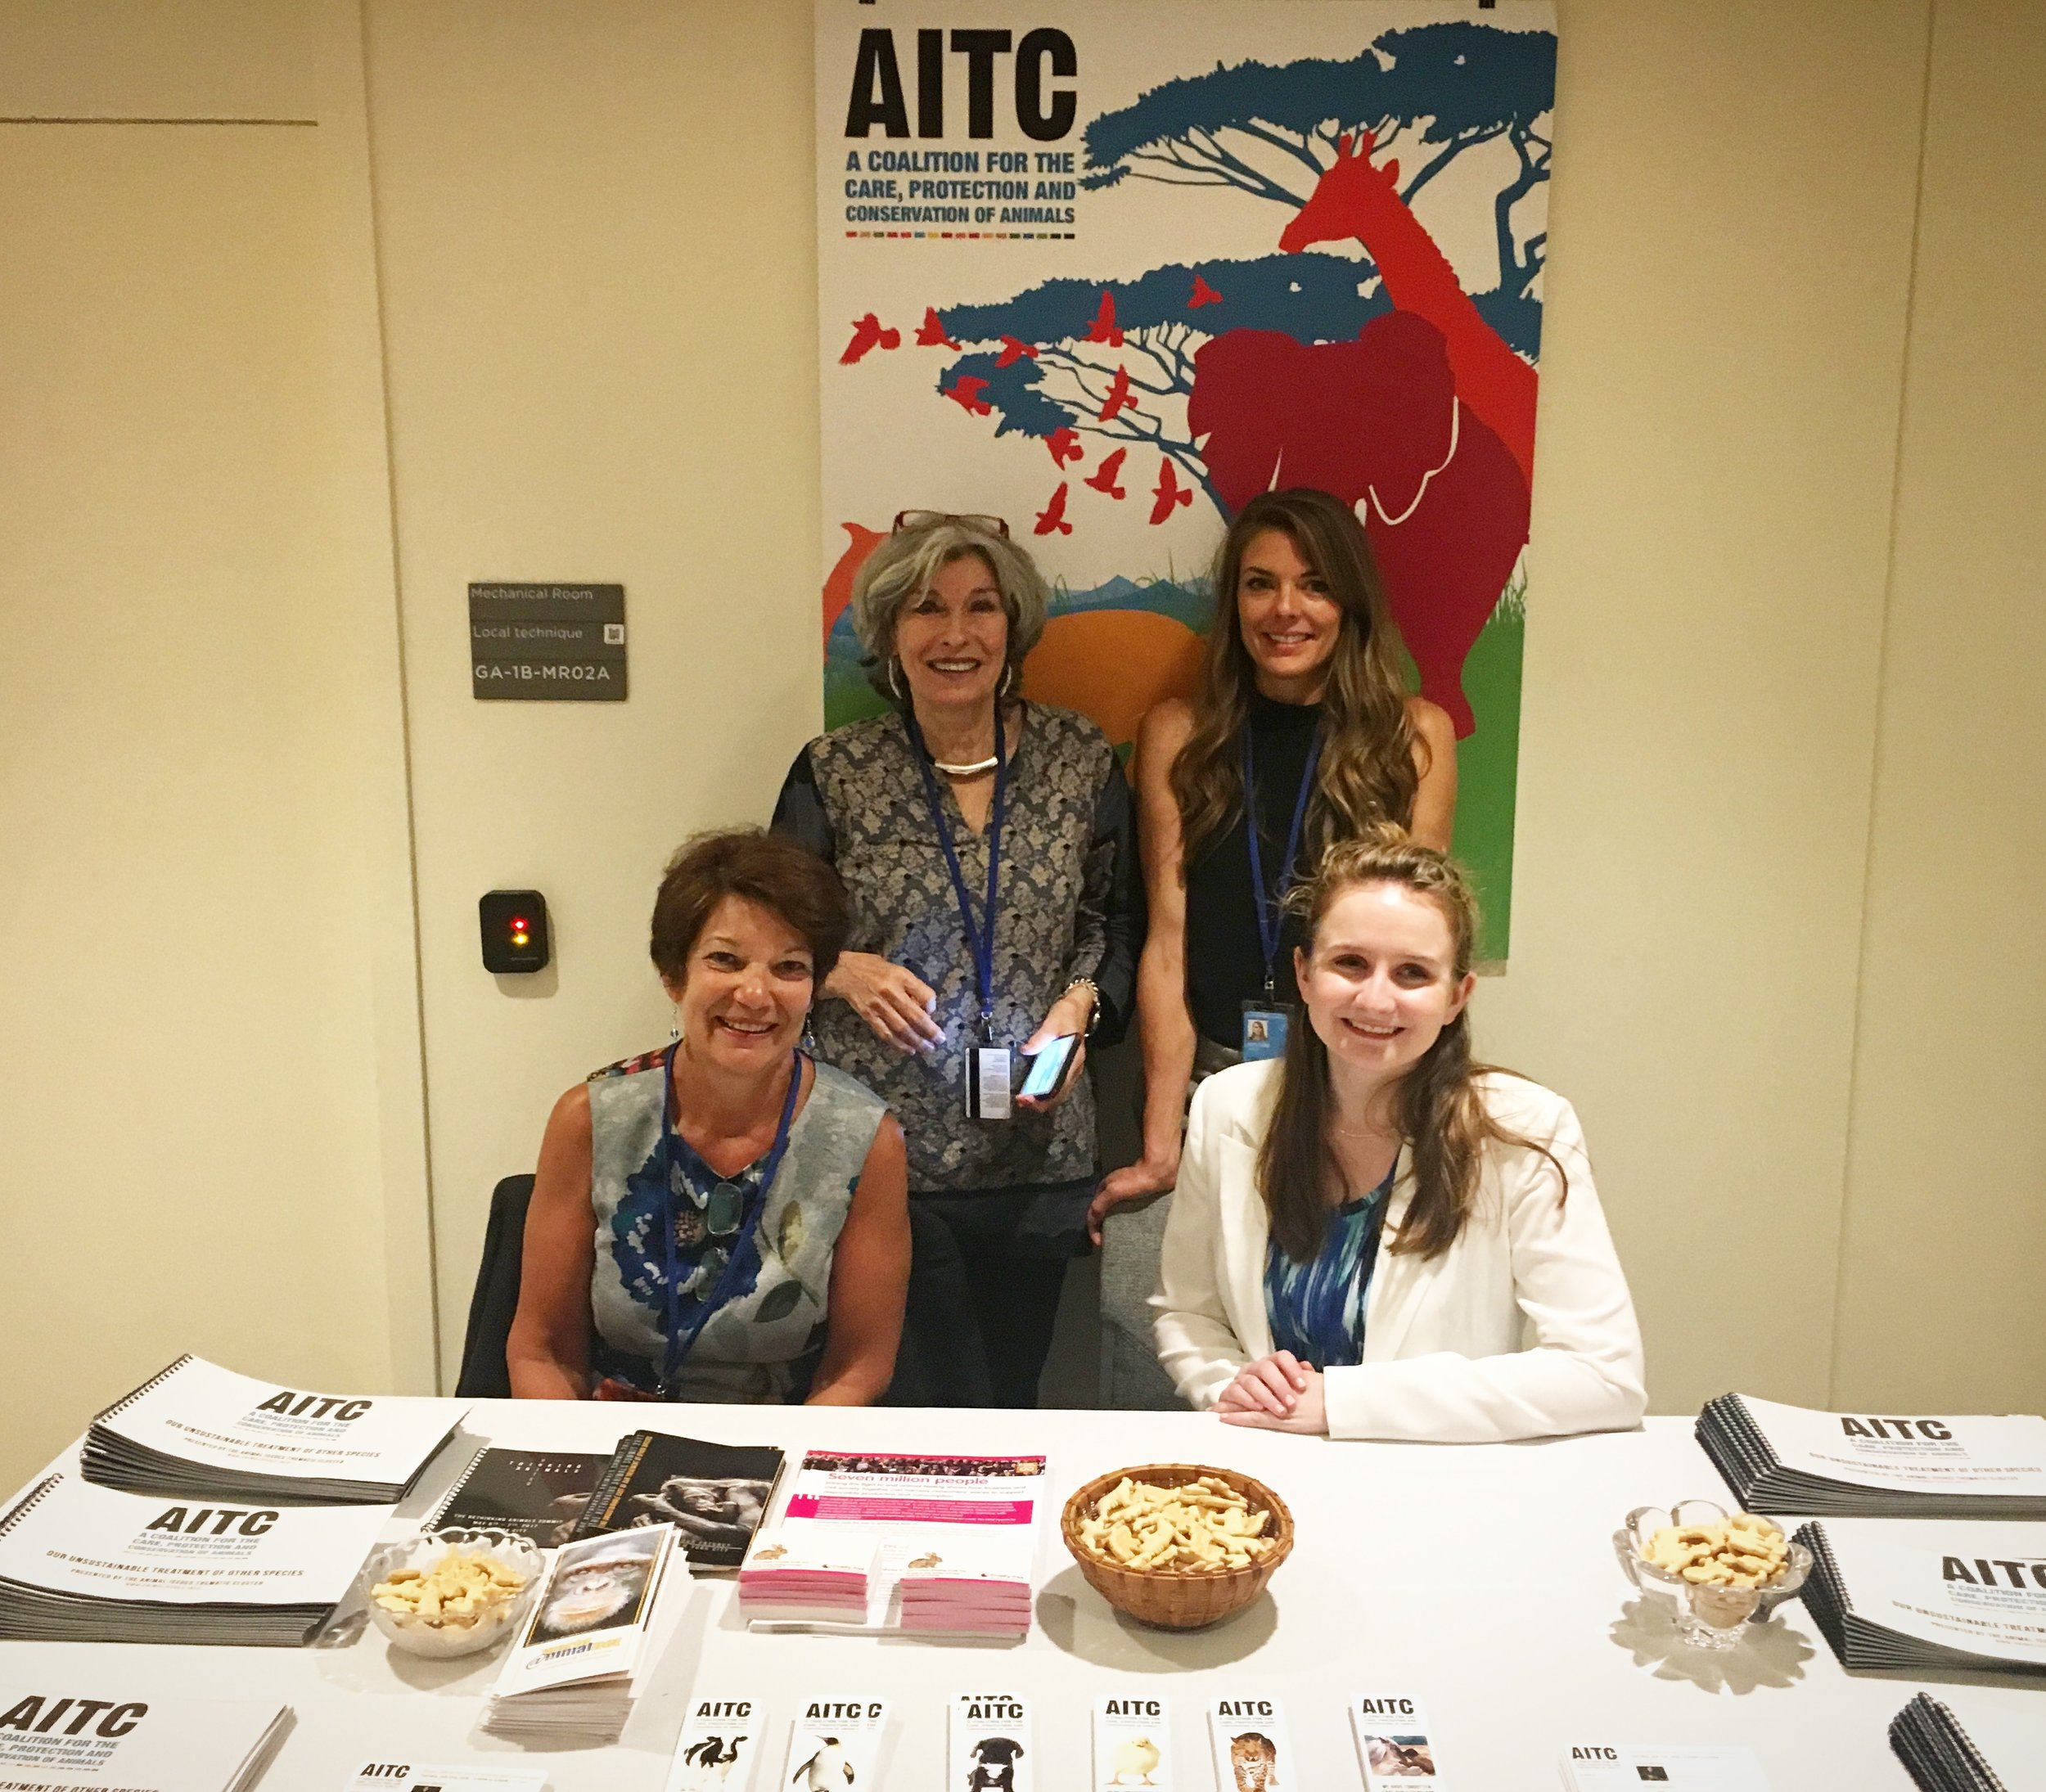 Members of the AITC at the 2018 HLPF.